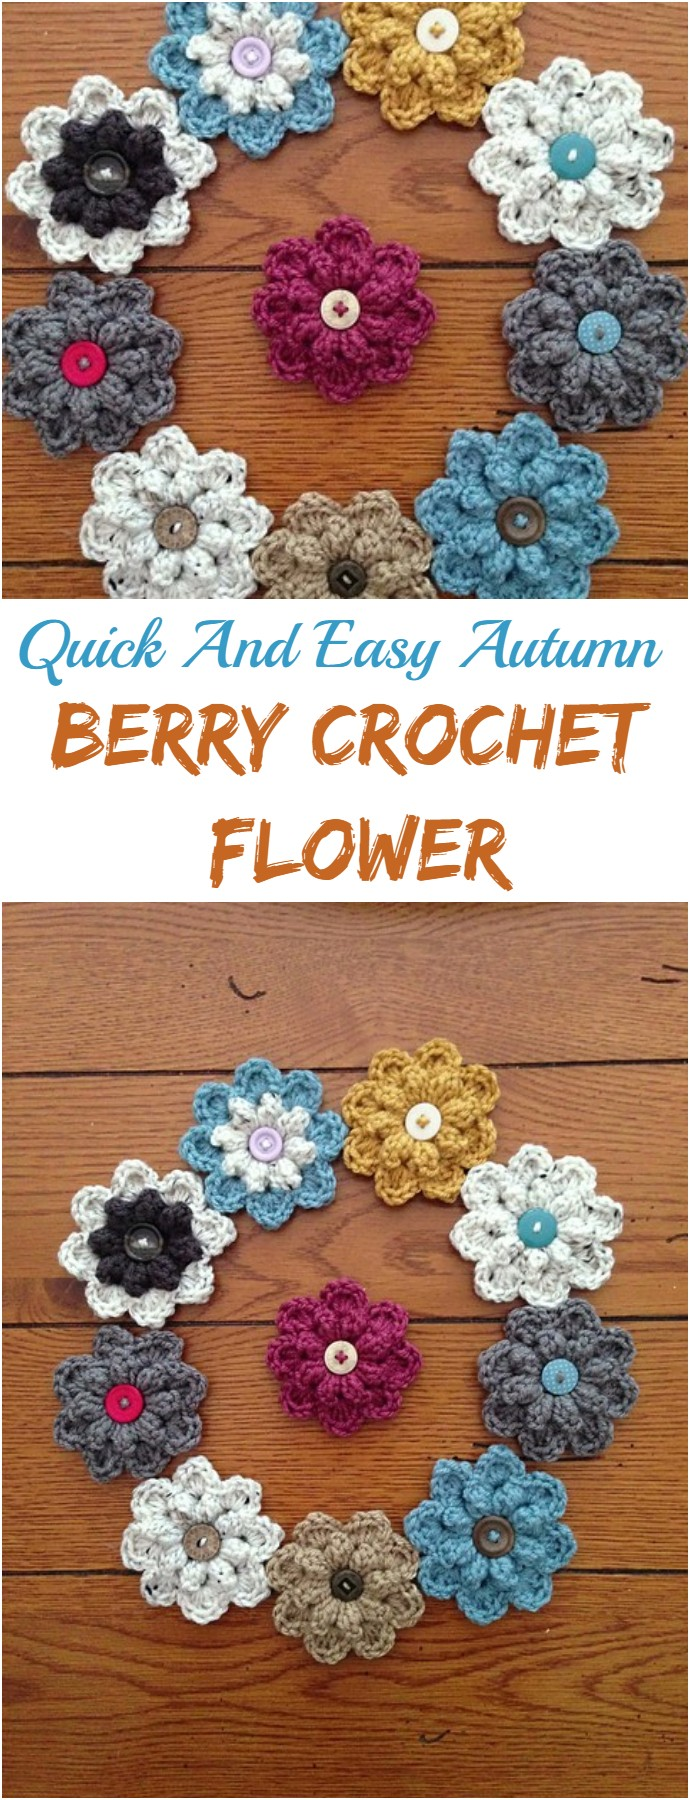 Quick And Easy Autumn Berry Crochet Flower